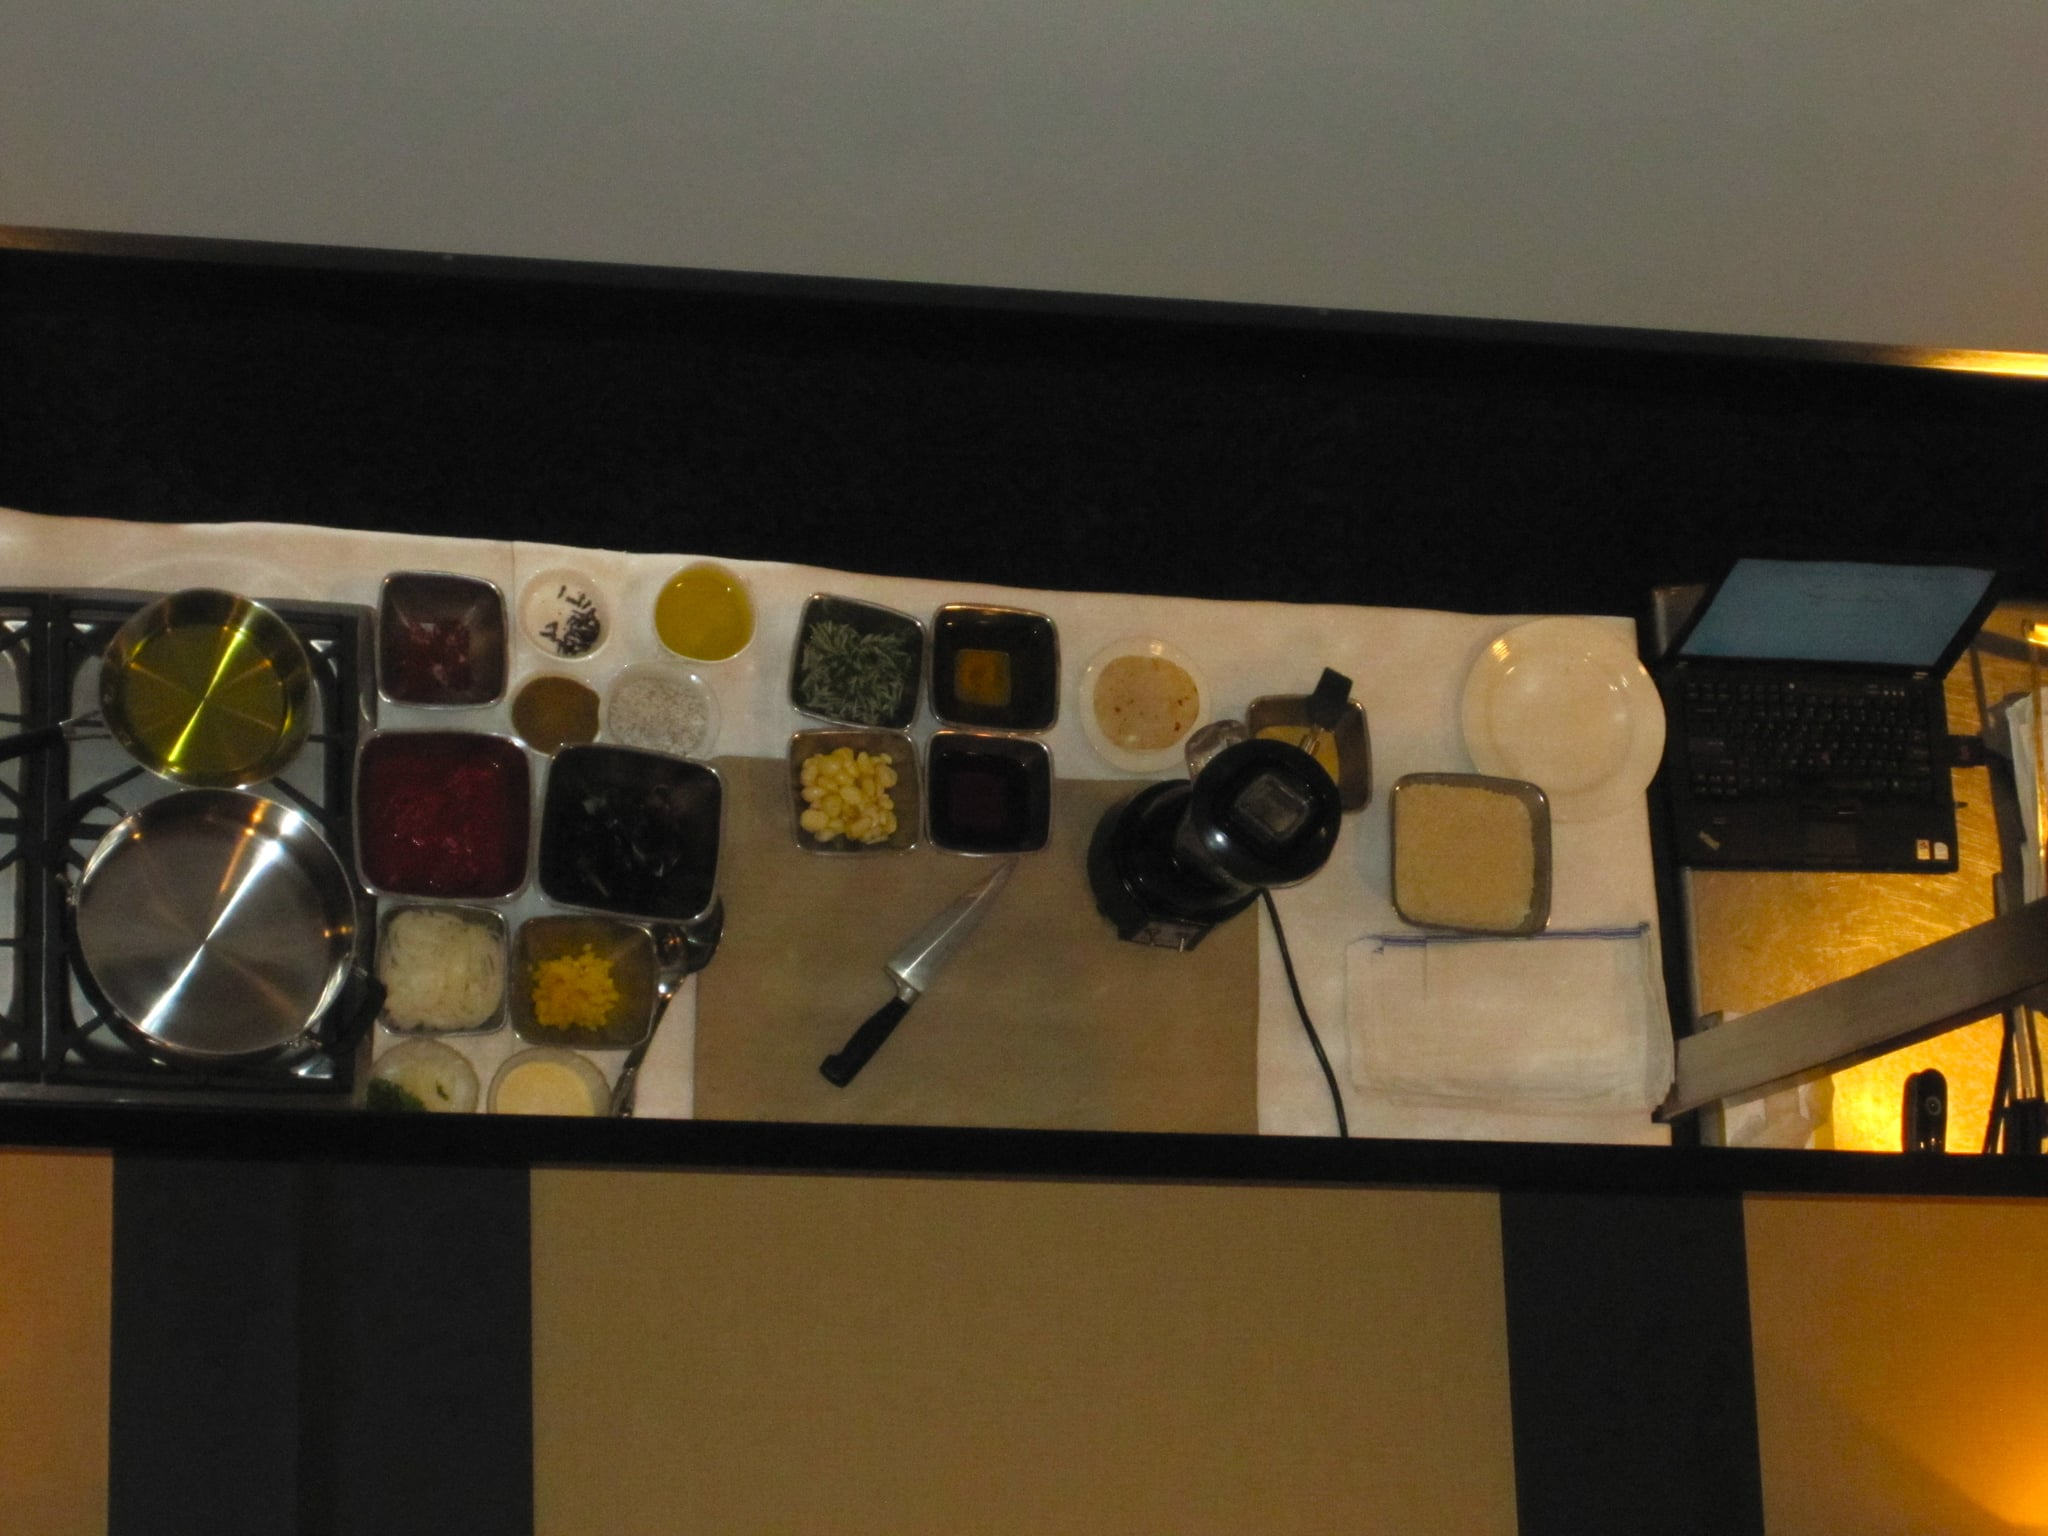 Mise en place is very important to a successful demonstration.